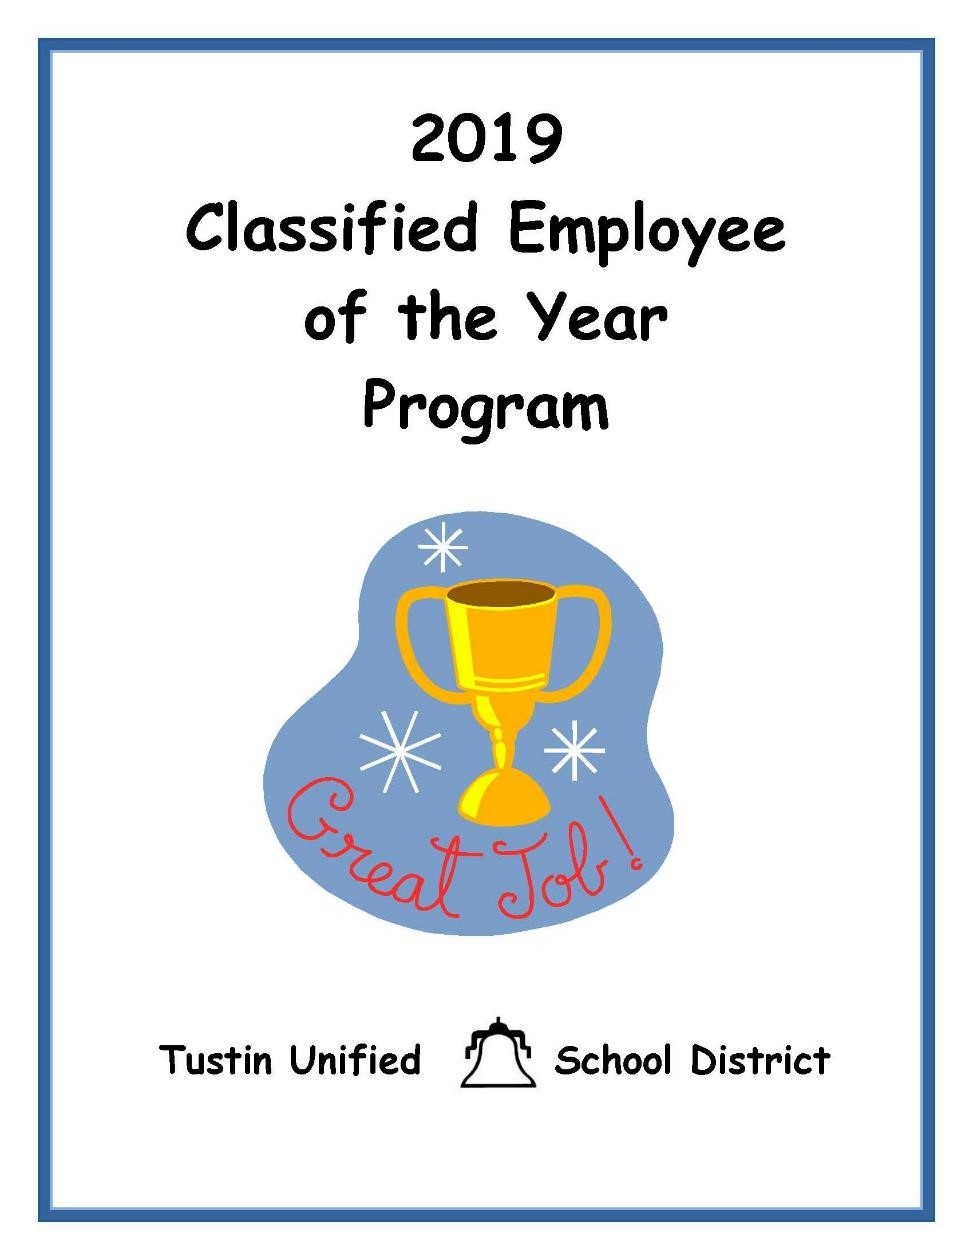 2019 Classified Employee of the Year with Award Graphic and TUSD Logo